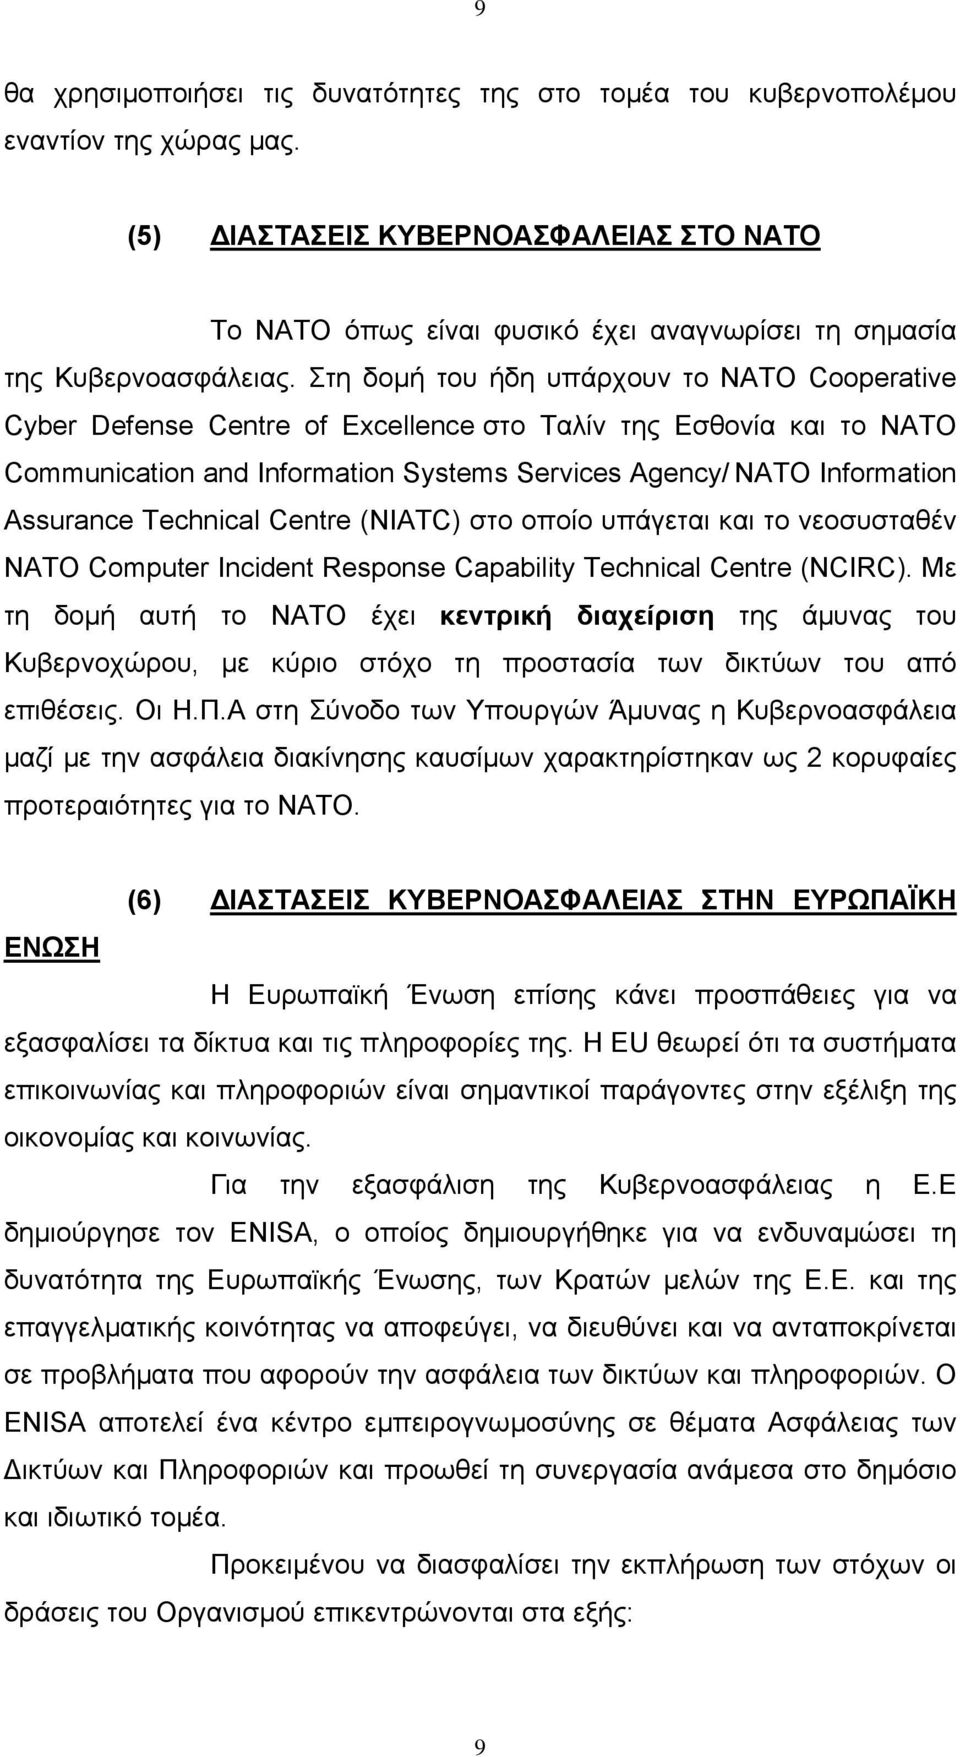 Στη δομή του ήδη υπάρχουν το NATO Cooperative Cyber Defense Centre of Excellence στο Ταλίν της Εσθονία και το NATO Communication and Information Systems Services Agency/ NATO Information Assurance